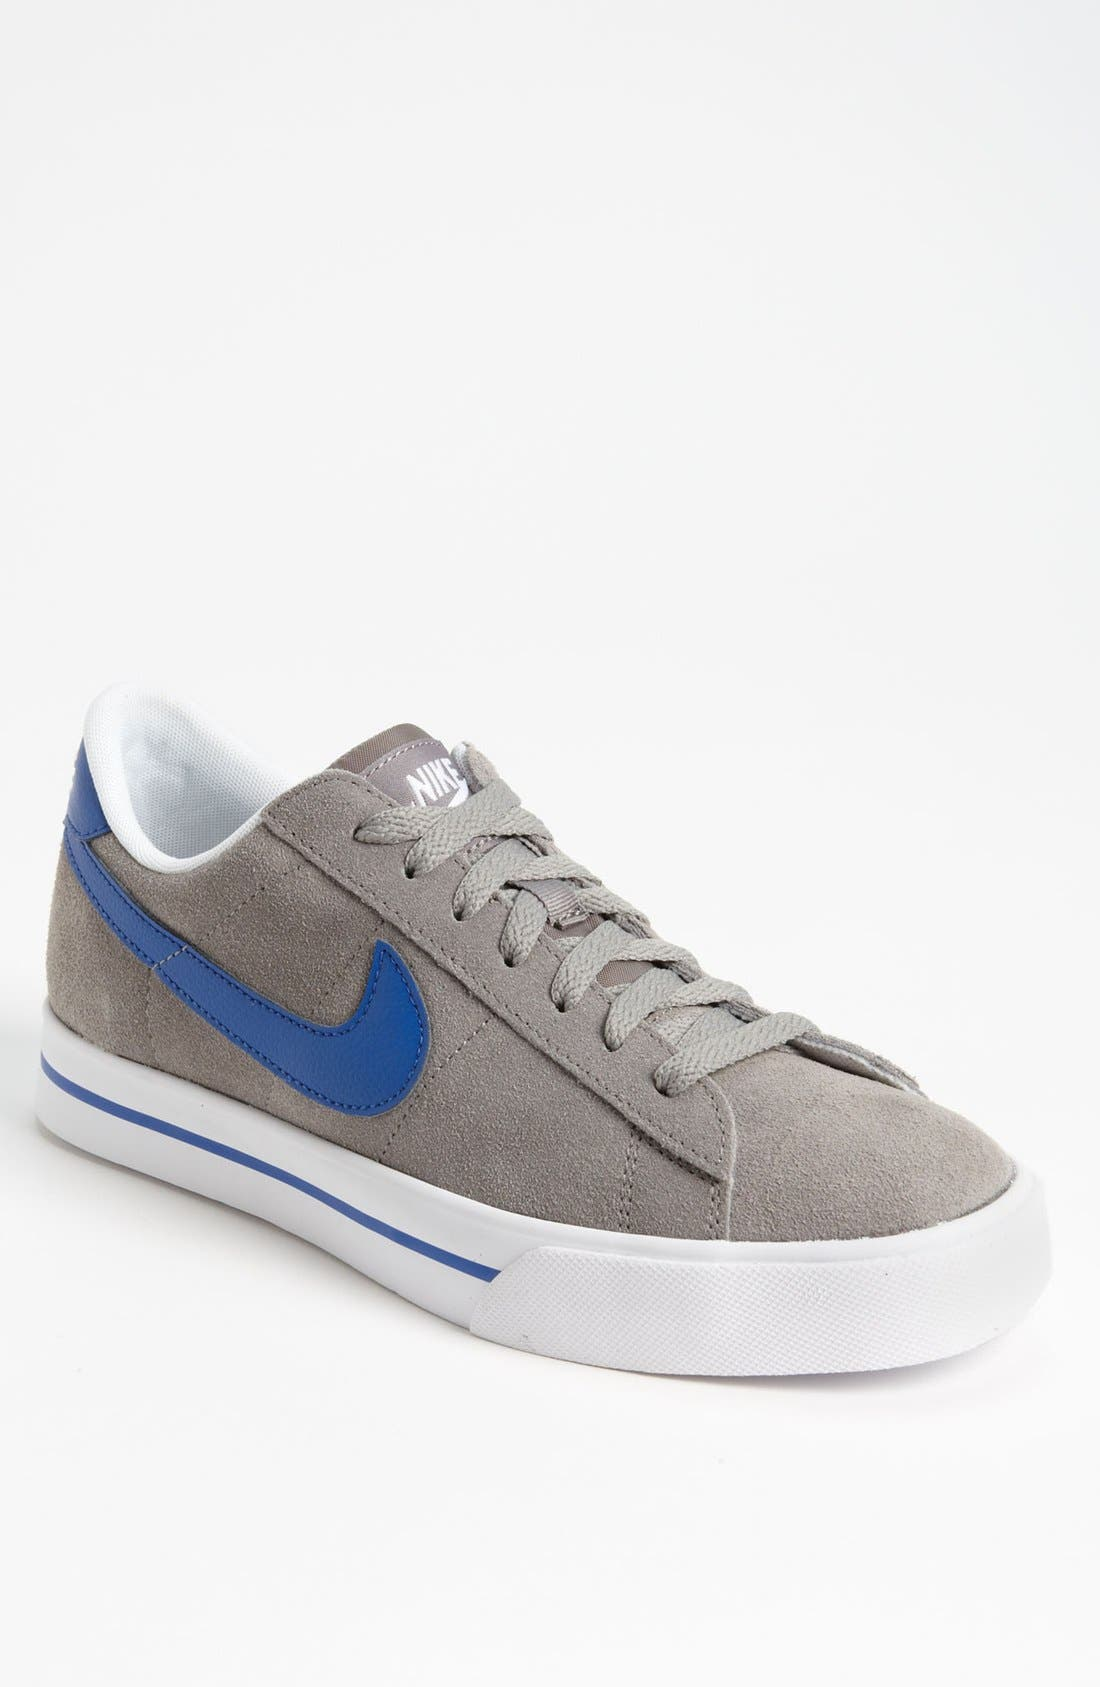 Alternate Image 1 Selected - Nike 'Sweet Classic' Sneaker (Men)